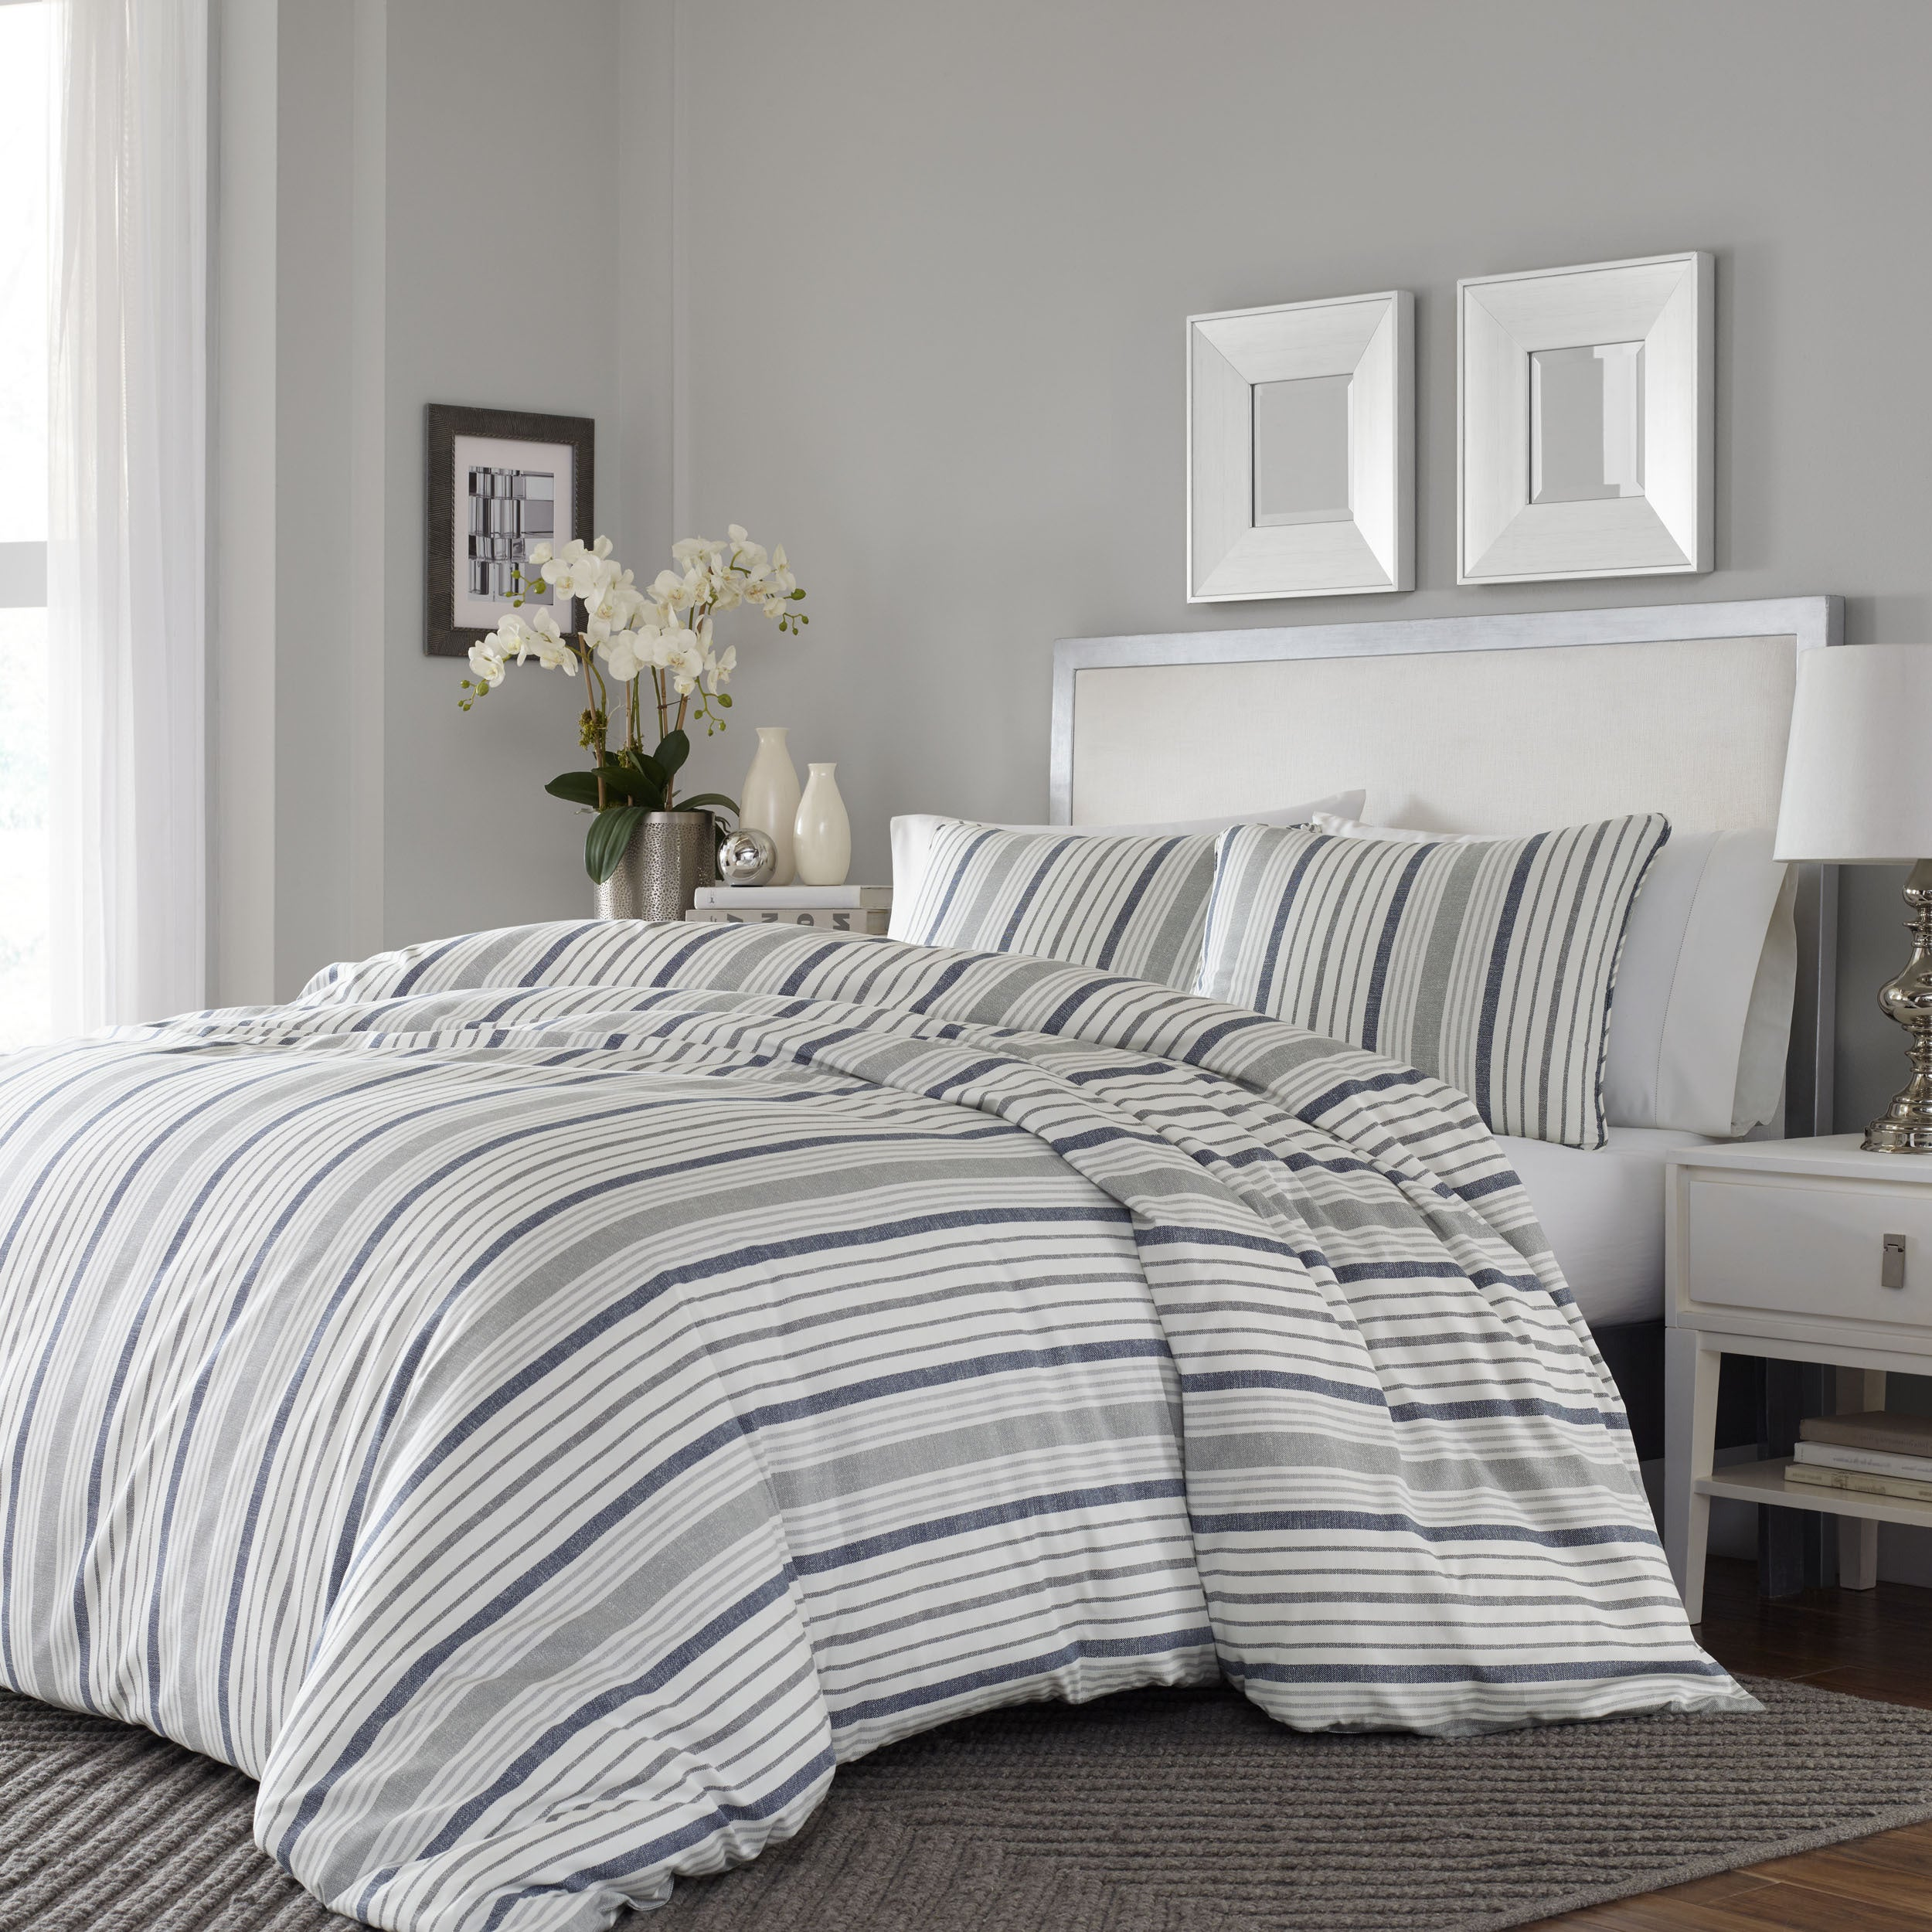 red set bedding comforter com georgia overstock cotton twill bath reversible piece park product bed madison